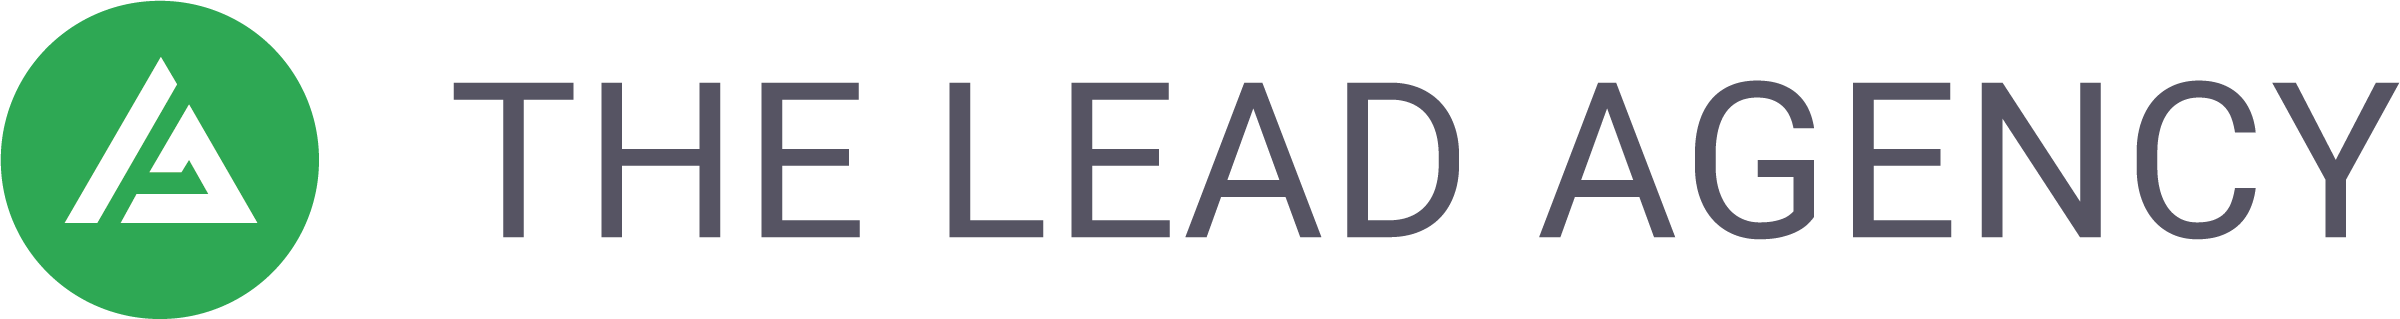 The Lead Agency